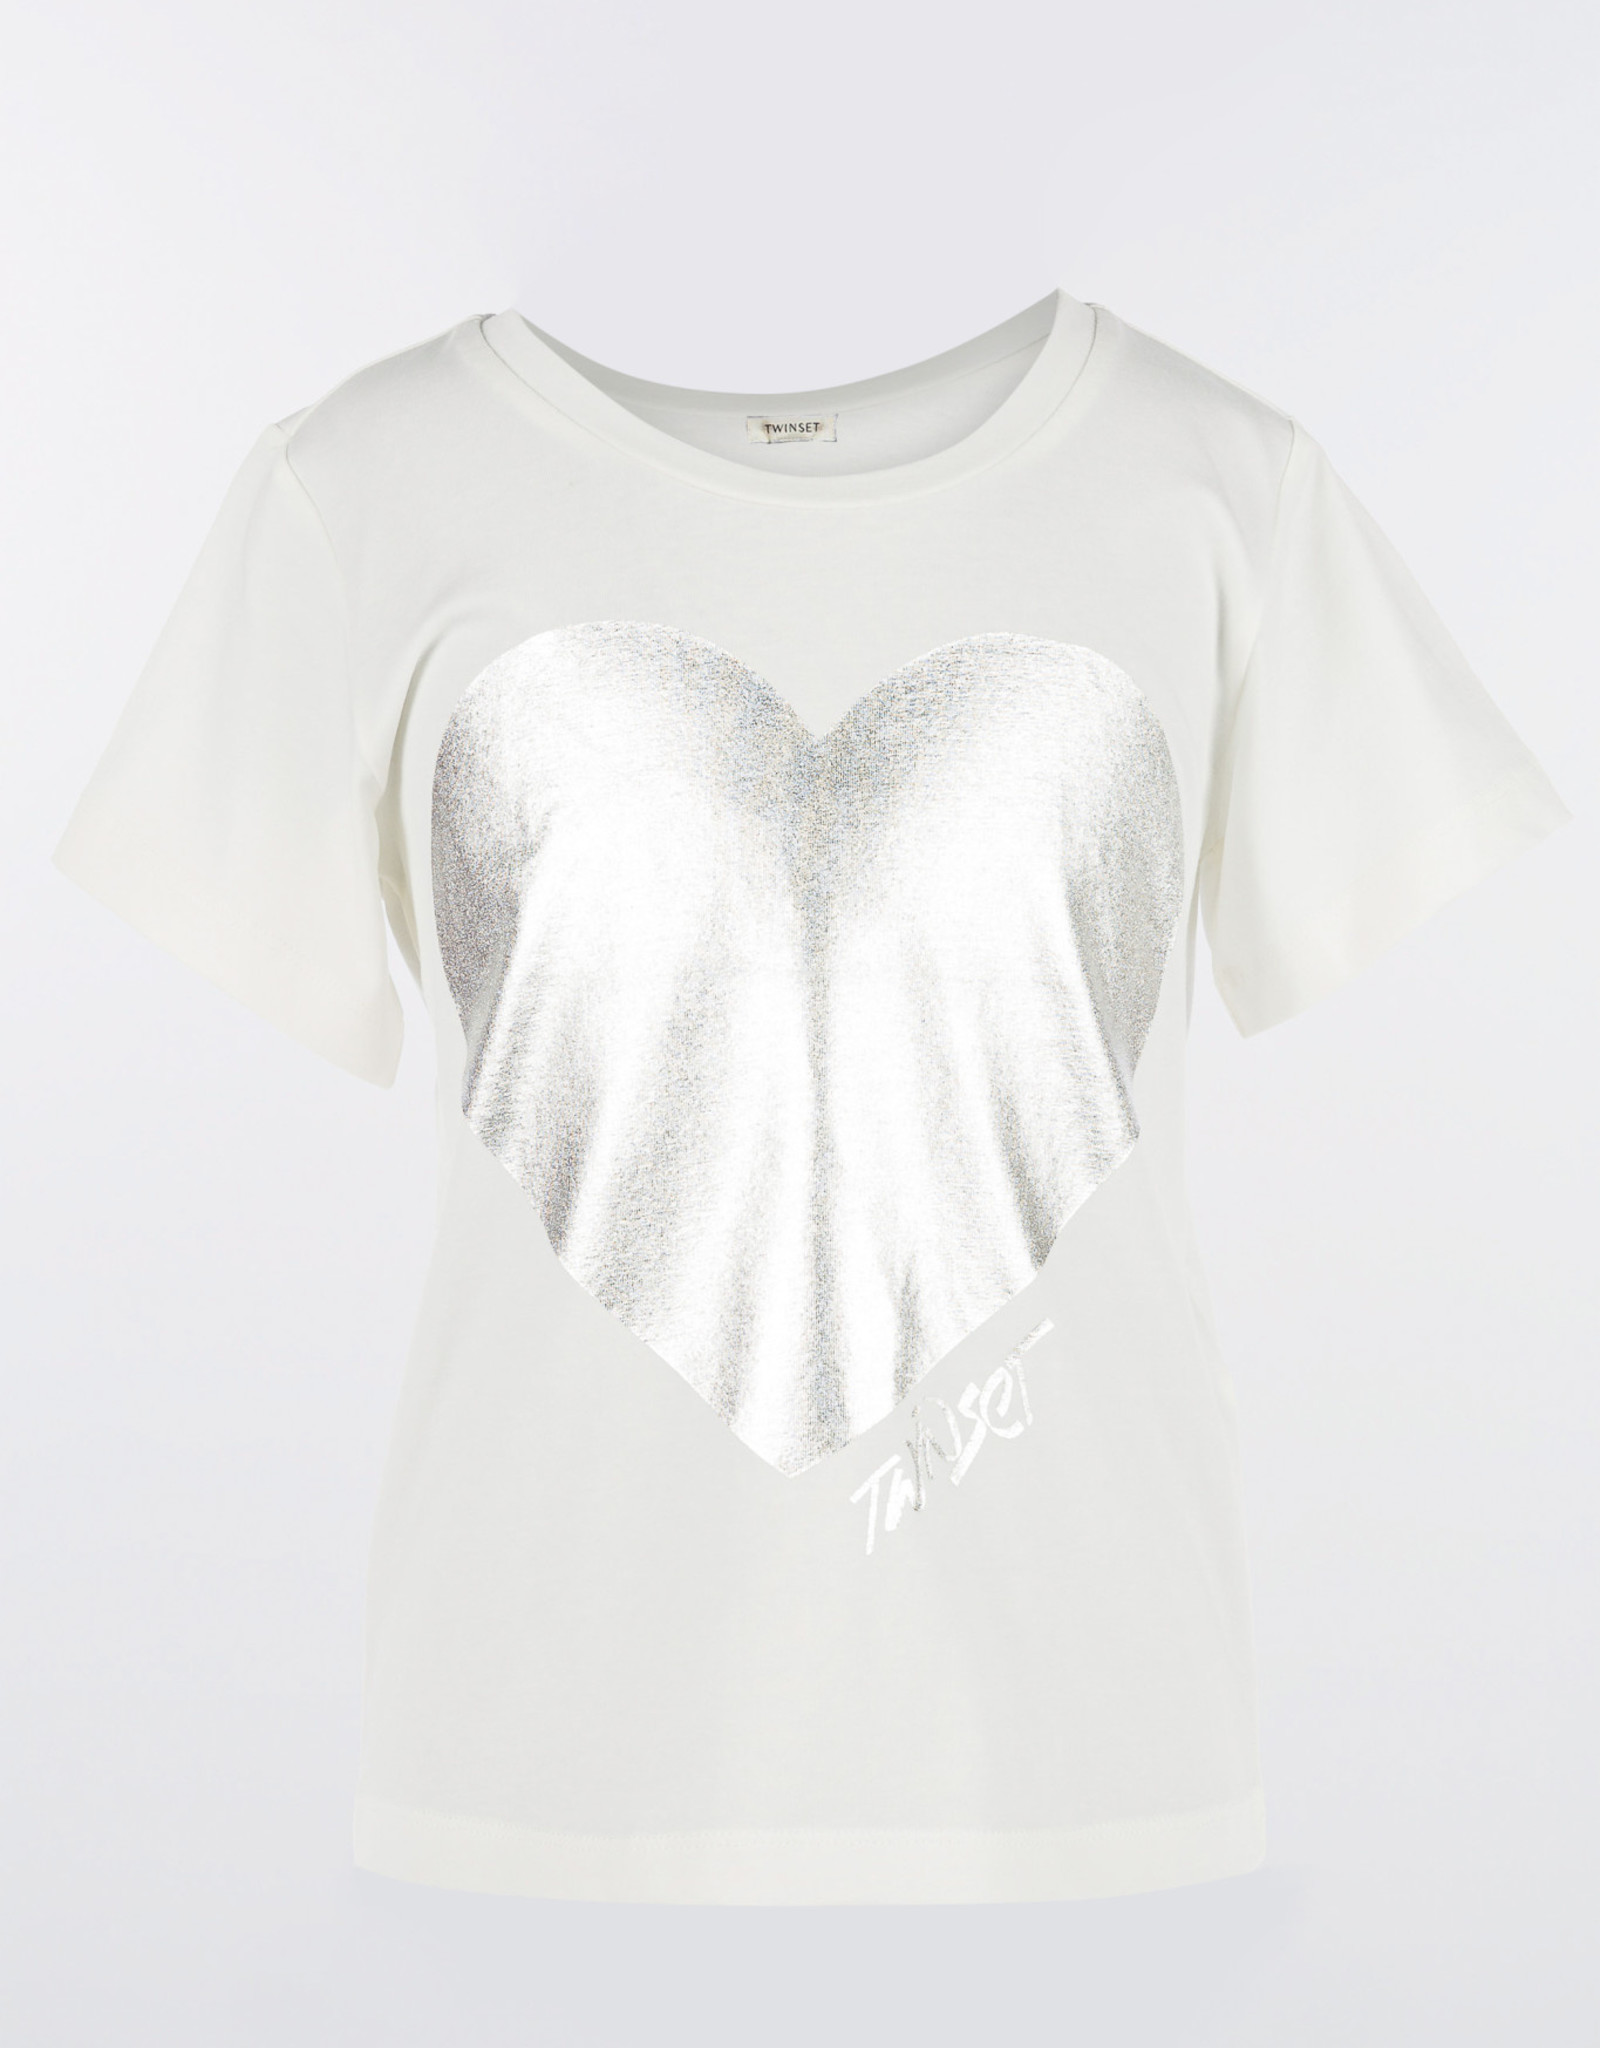 TWIN SET TWIN SET T-shirt zilver hart